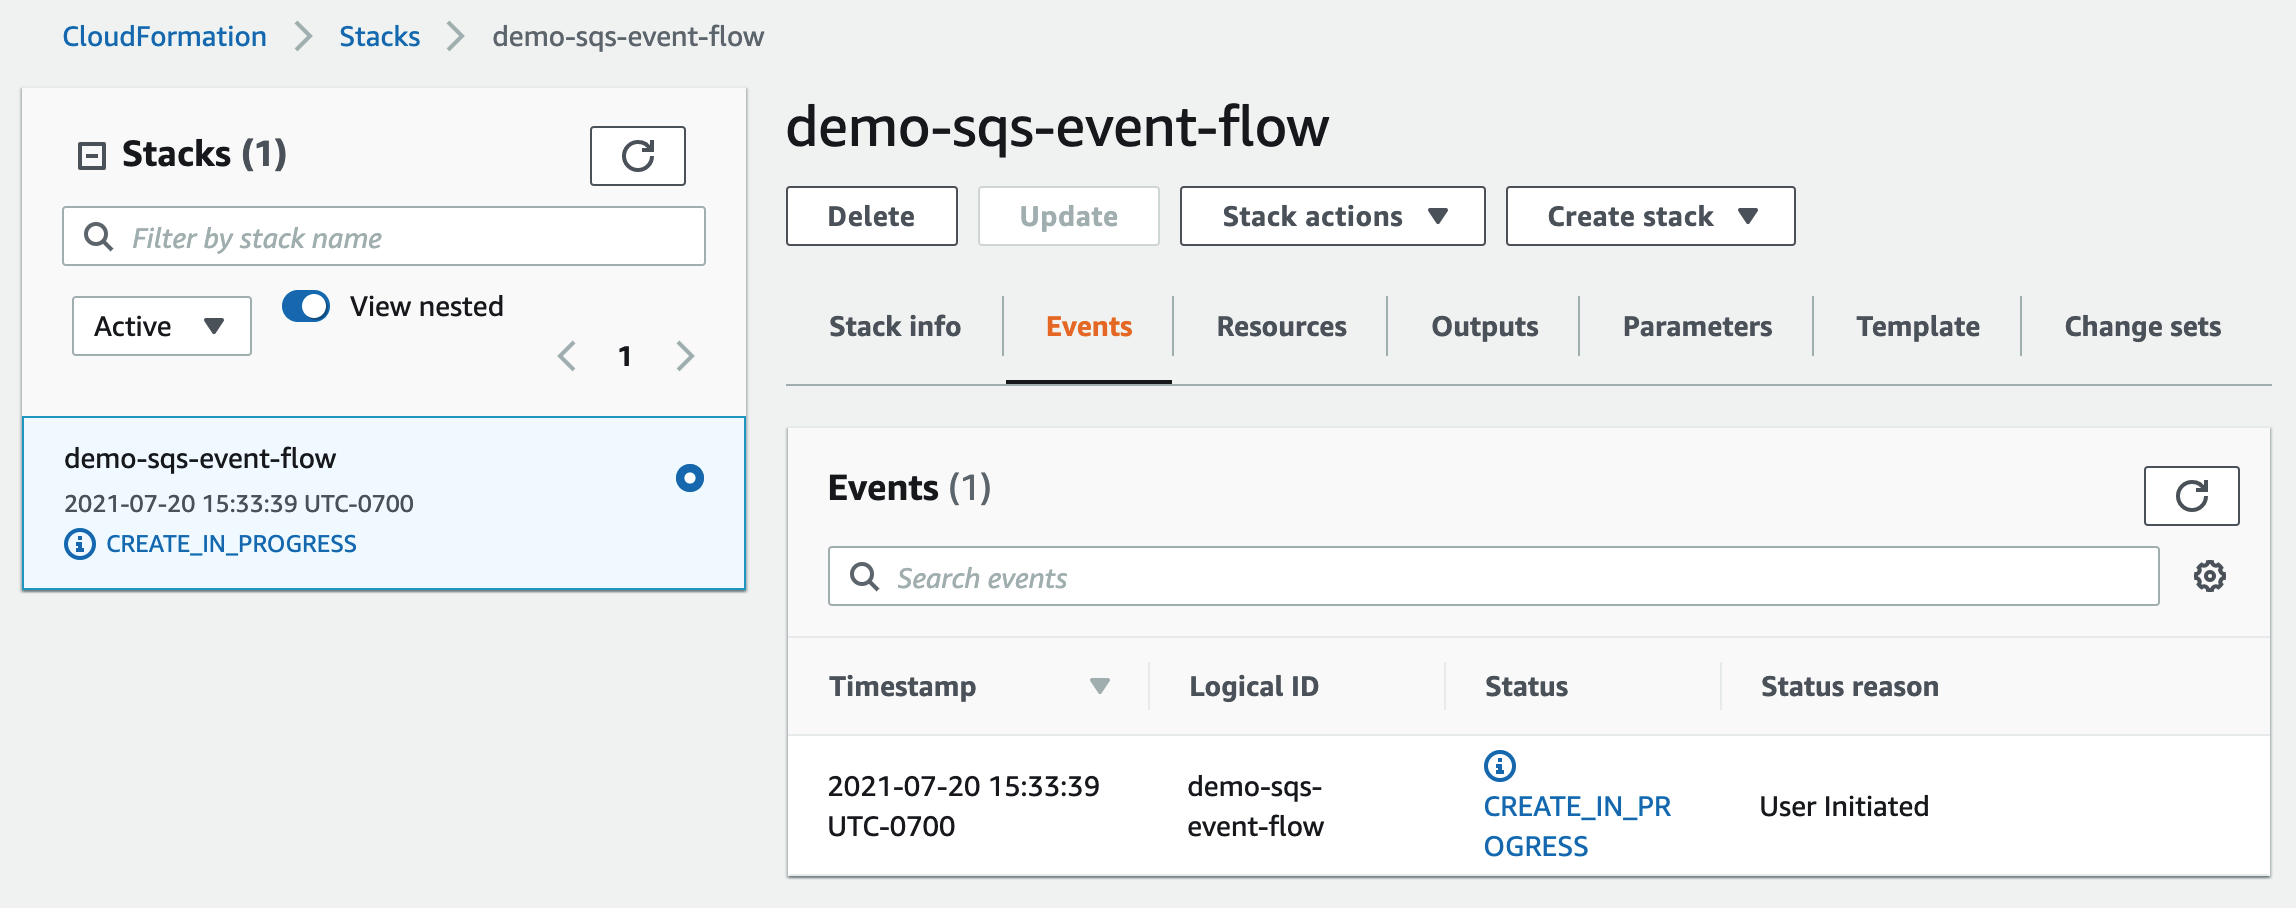 CloudFormation stack creation in progress